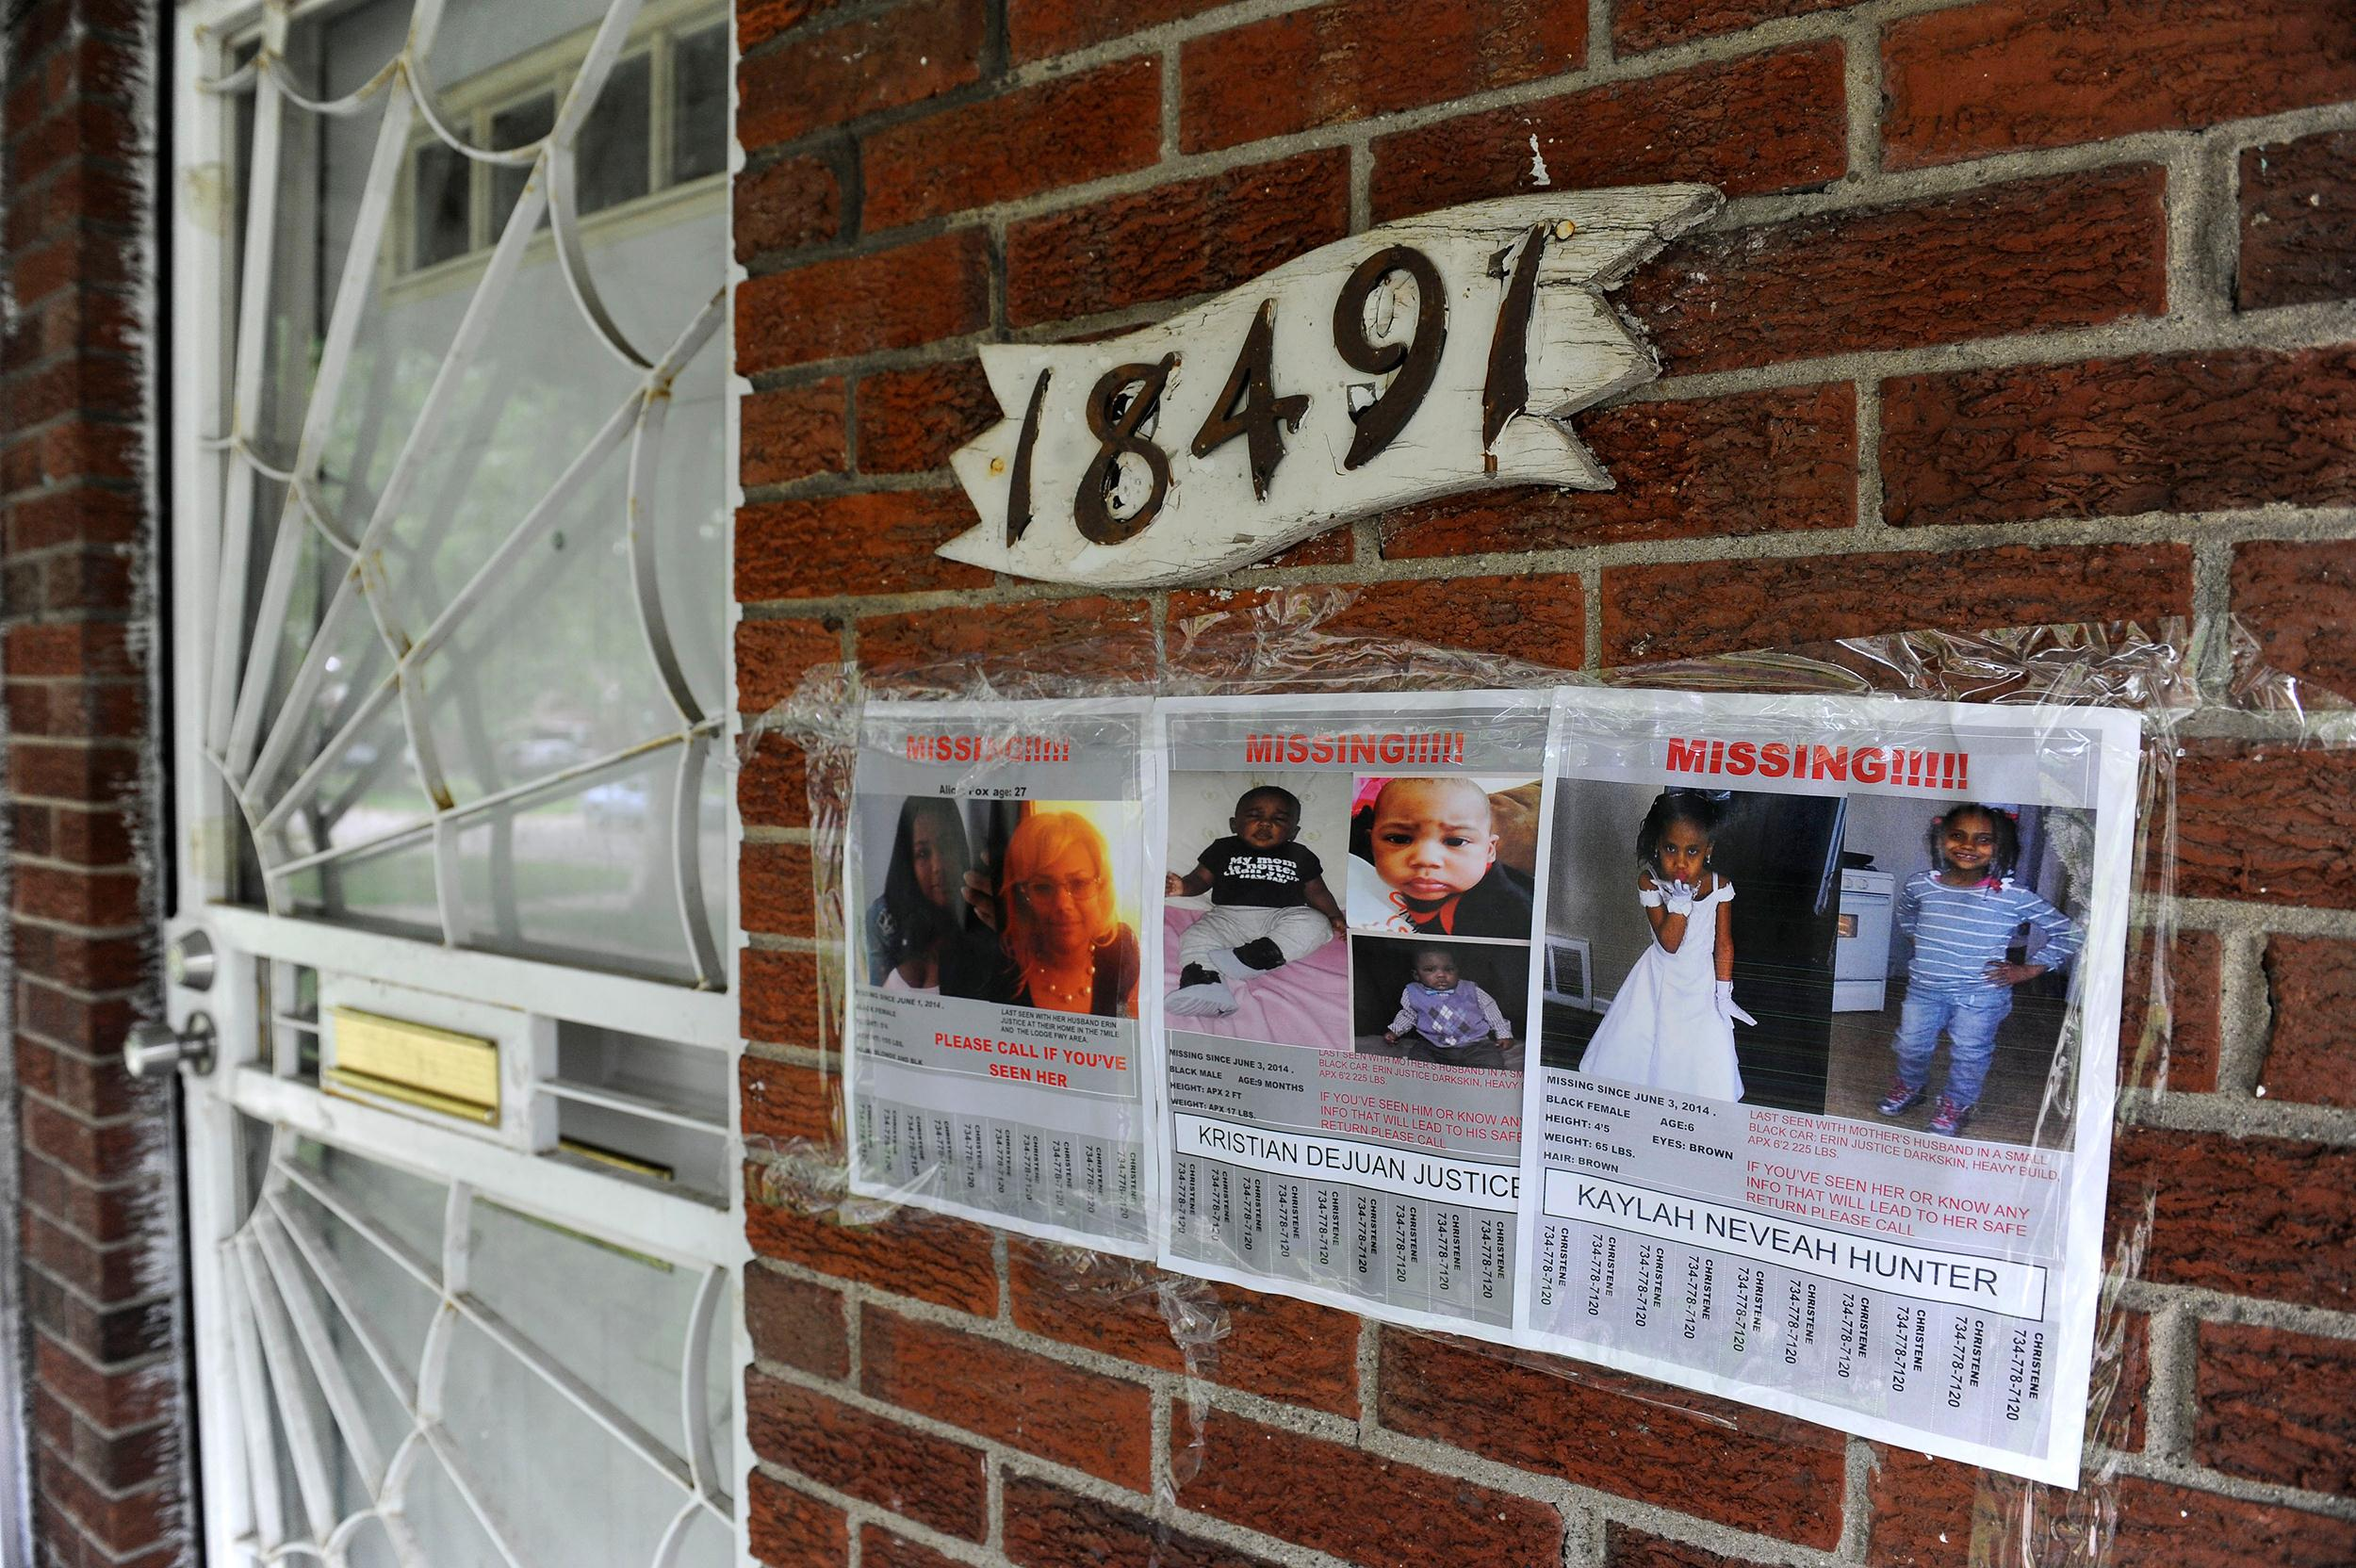 Image: Flyers of a missing woman and children are taped to the brick home of Alicia Fox